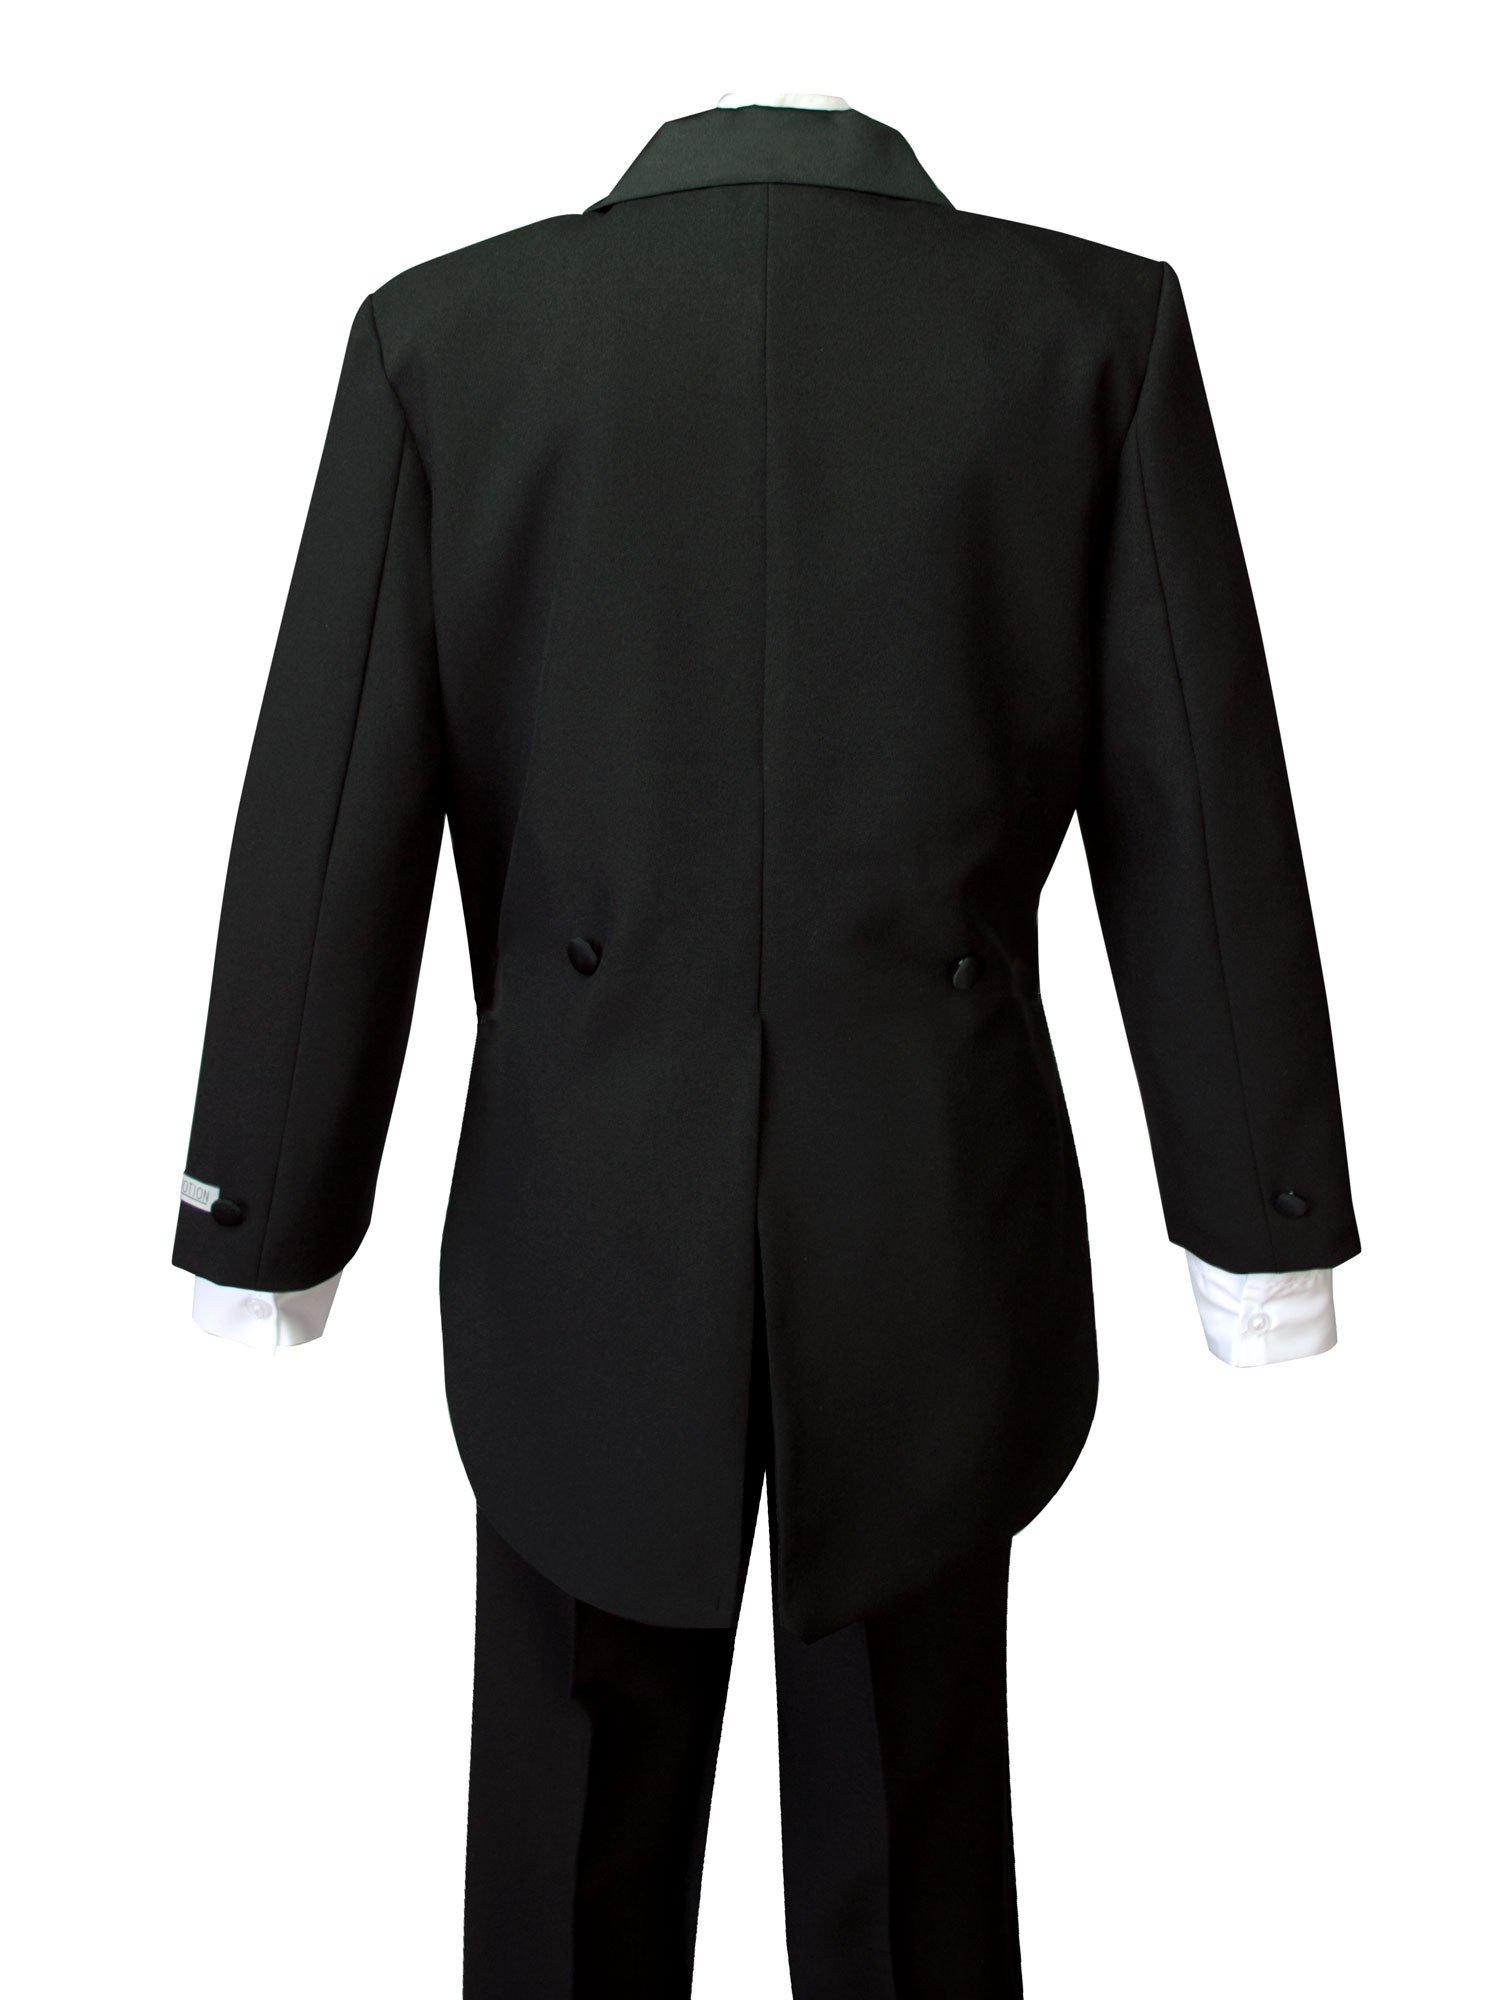 Spring Notion Boys' Black Classic Tuxedo with Tail Burgundy 4T by Spring Notion (Image #5)